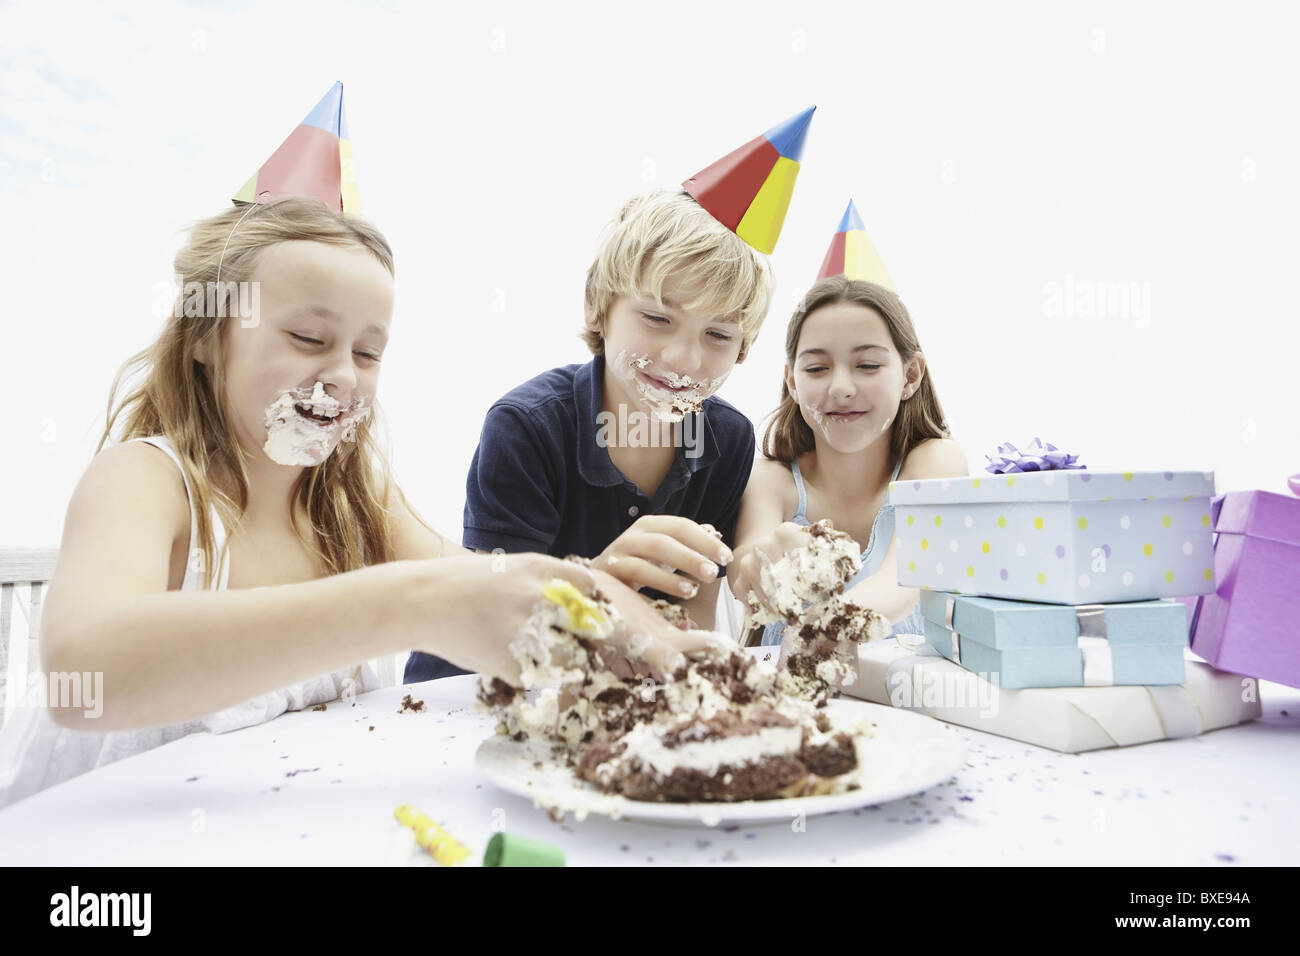 Outstanding Children Eating Birthday Cake With Their Hands Stock Photo Funny Birthday Cards Online Hendilapandamsfinfo